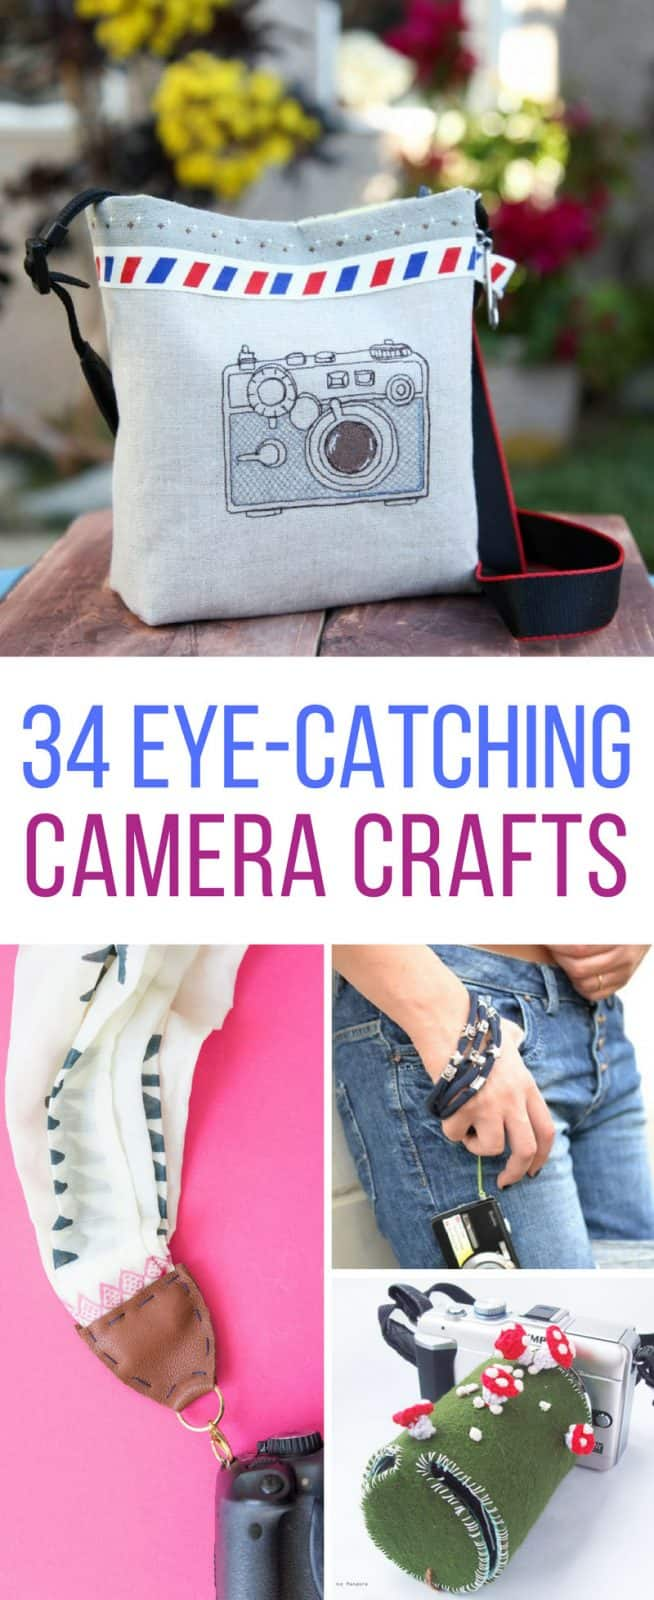 Loving these DIY camera cases and straps! Thanks for sharing!